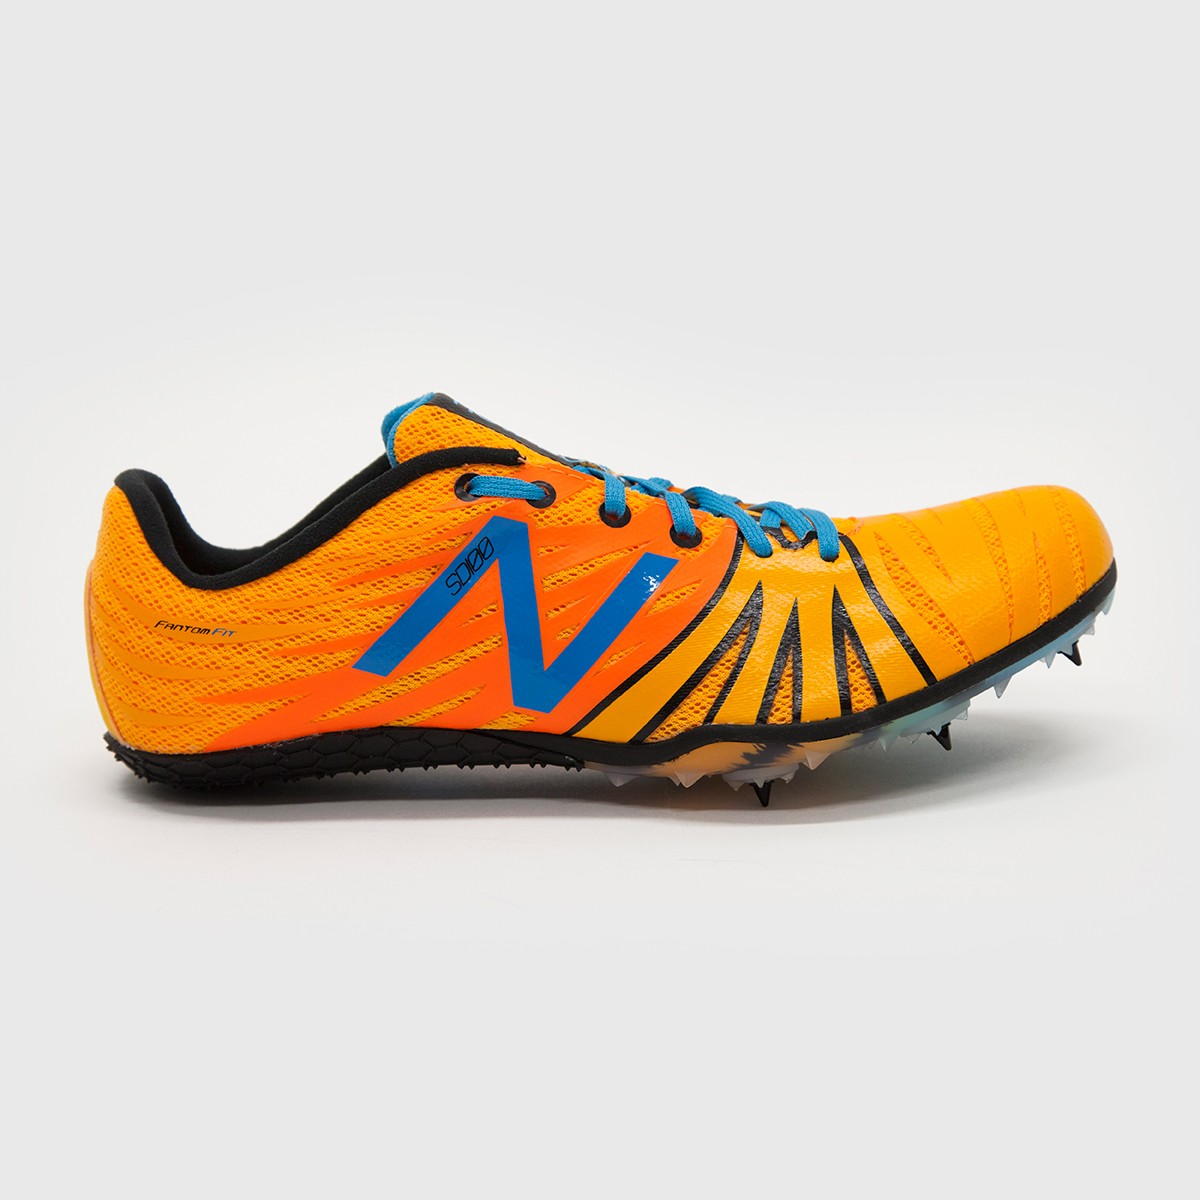 New Balance Unisex SD100 Track Spike Shoe